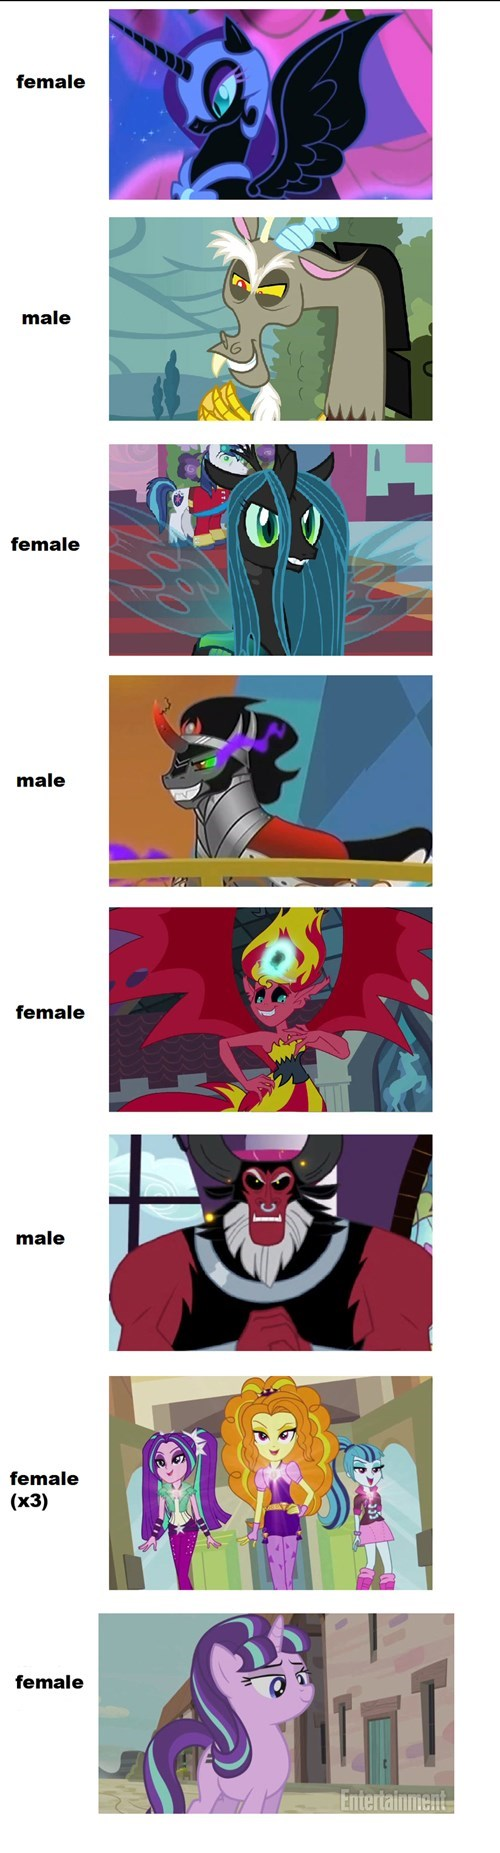 gender villains MLP - 8457756672